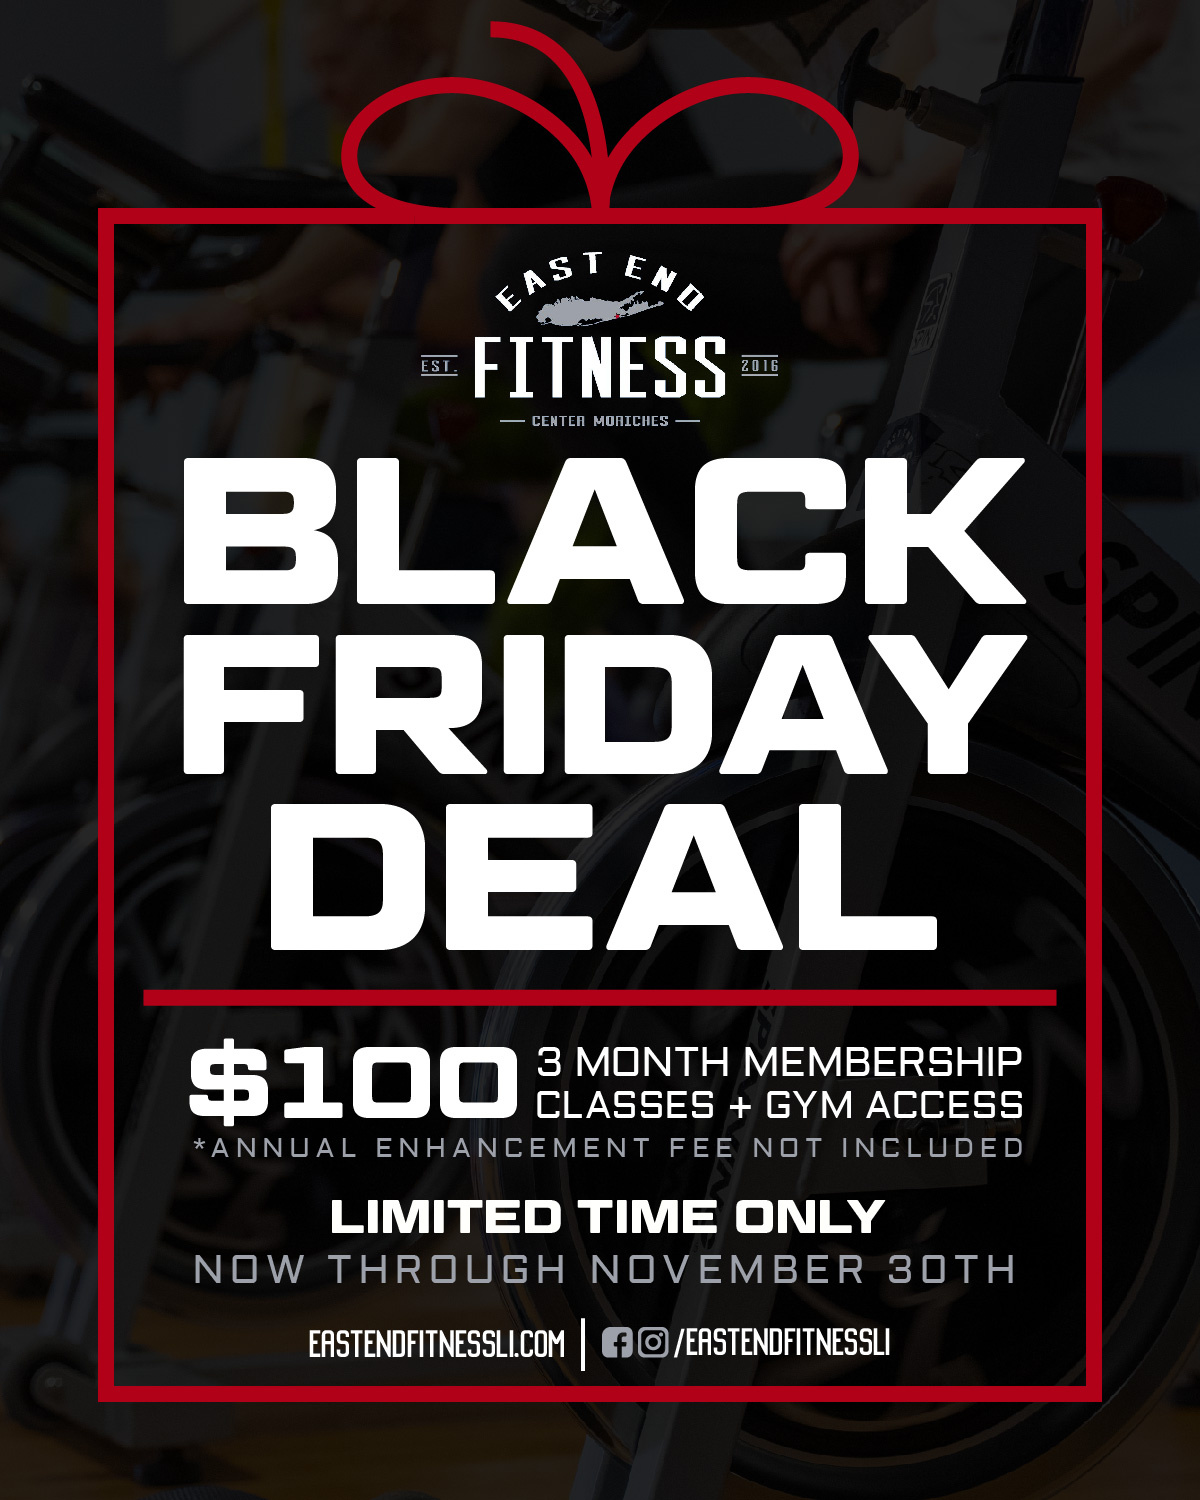 Flyer for Black Friday Deal, $100 for a 3 month membership classes and gym access. Annual enhancement fee not included. Limited time only. Now through November 30th.